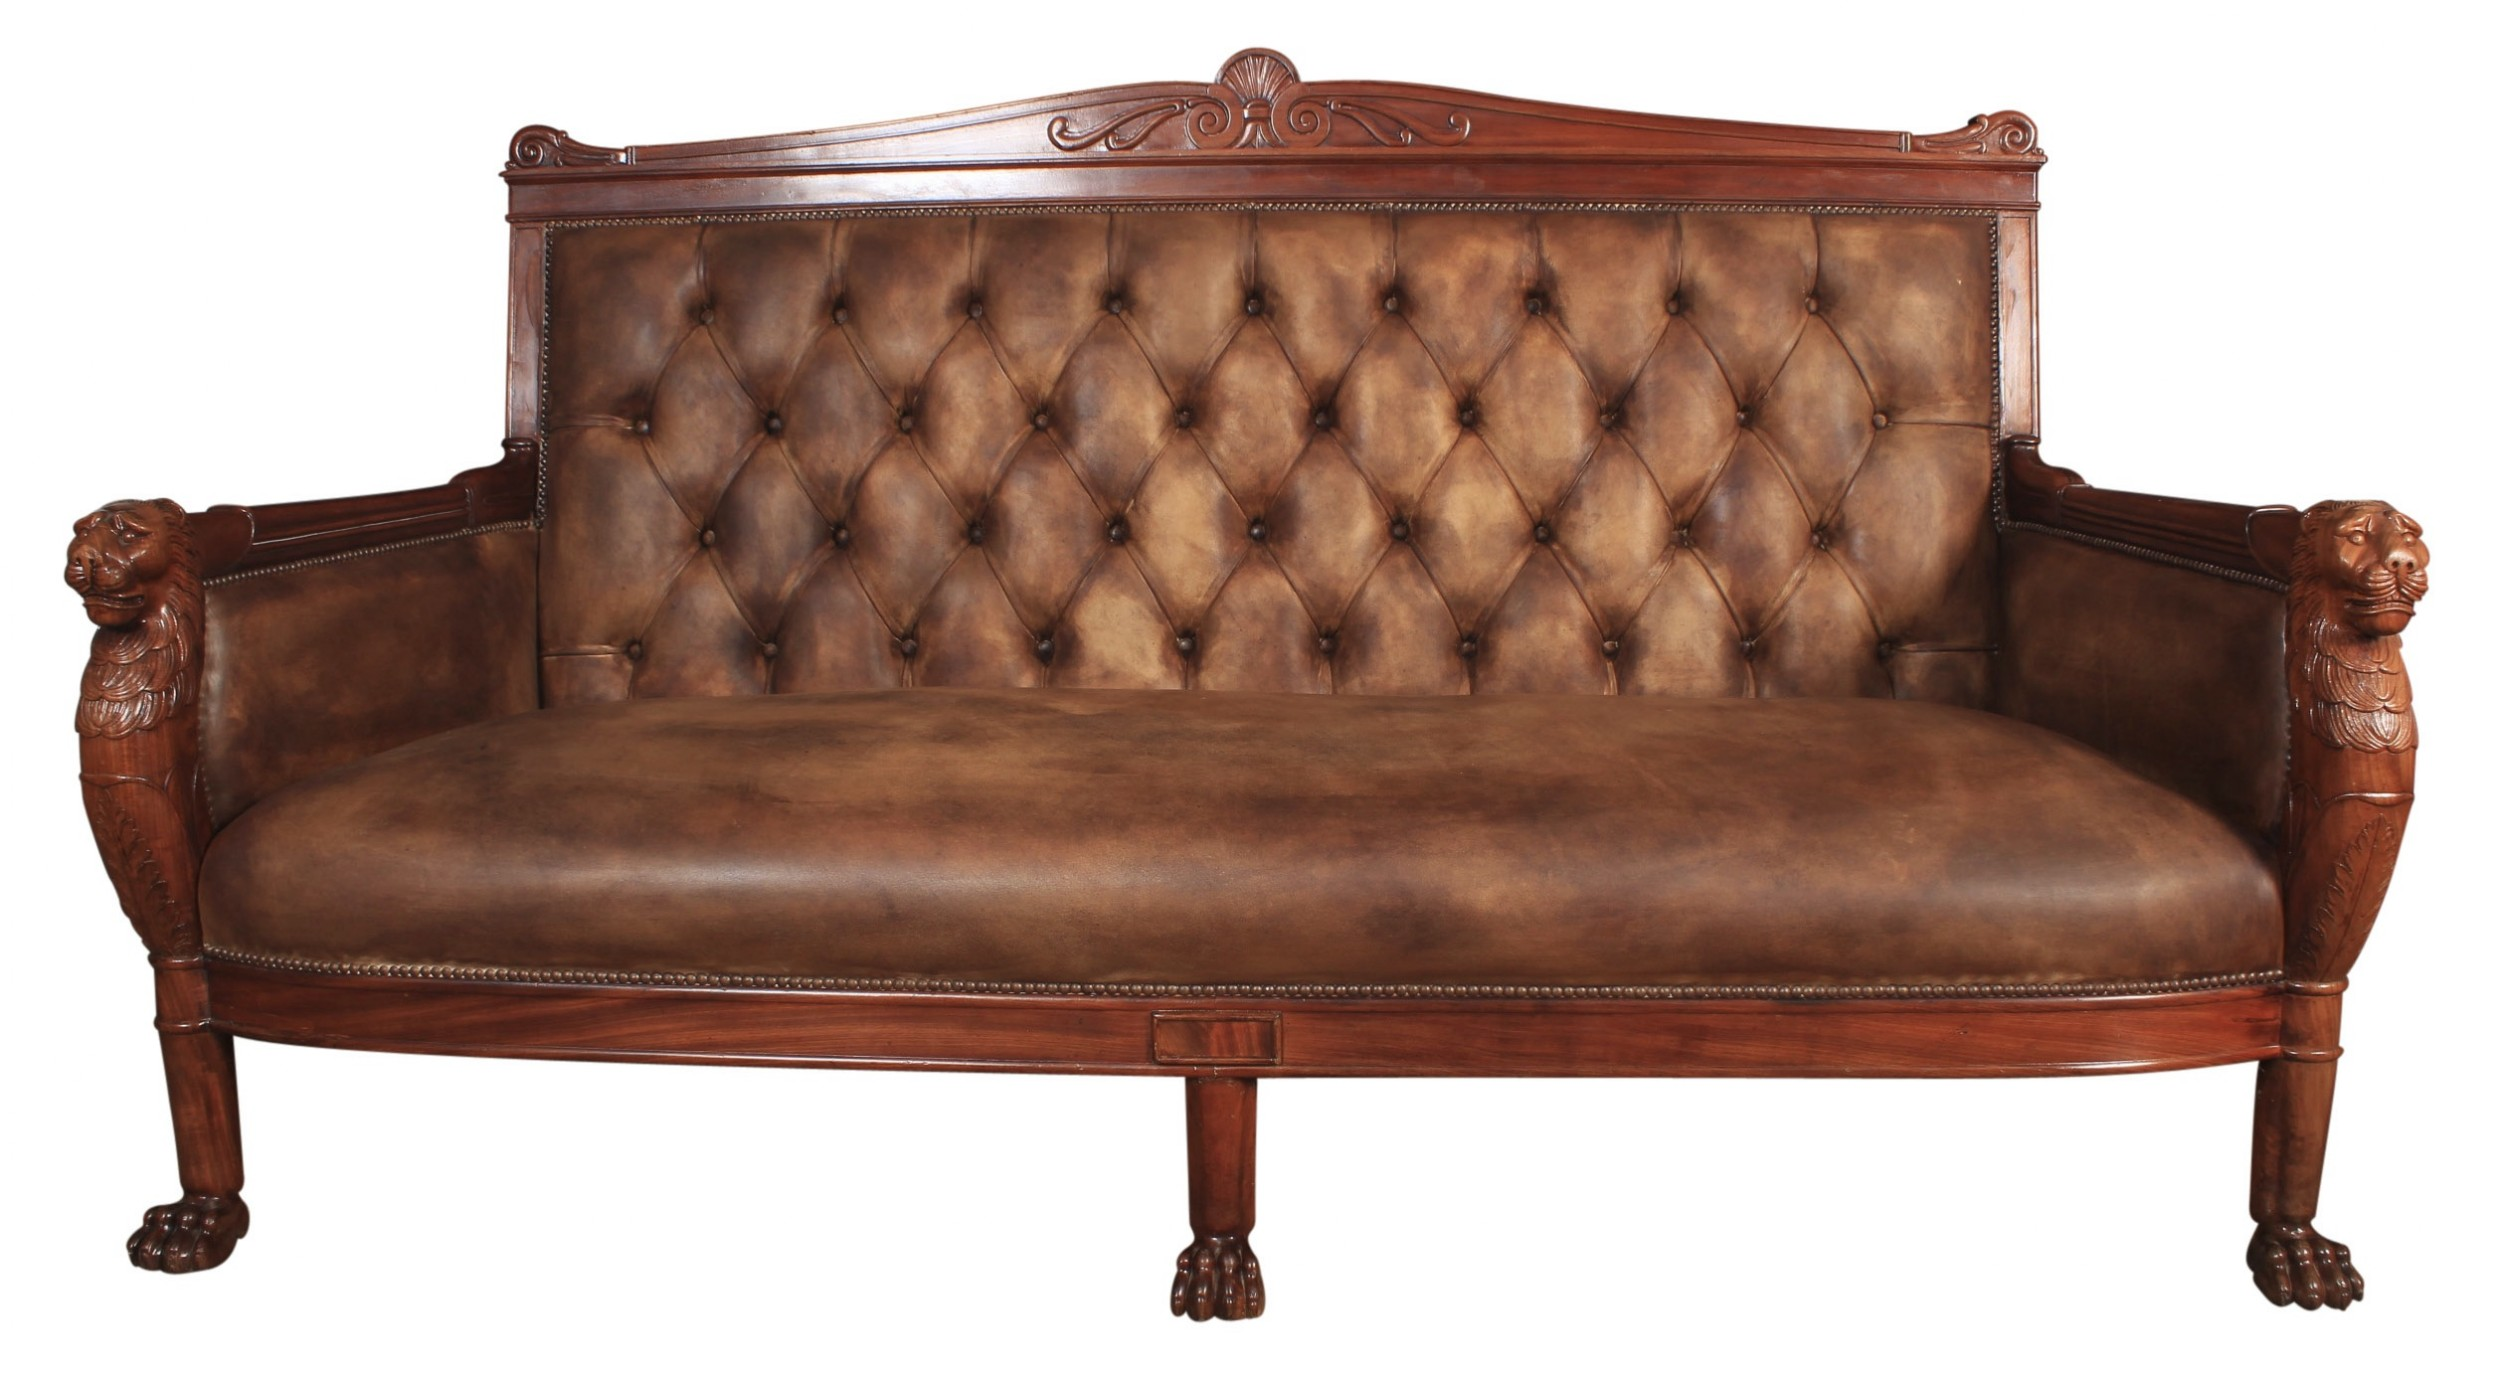 french mahogany leather chesterfield style sofa c1820